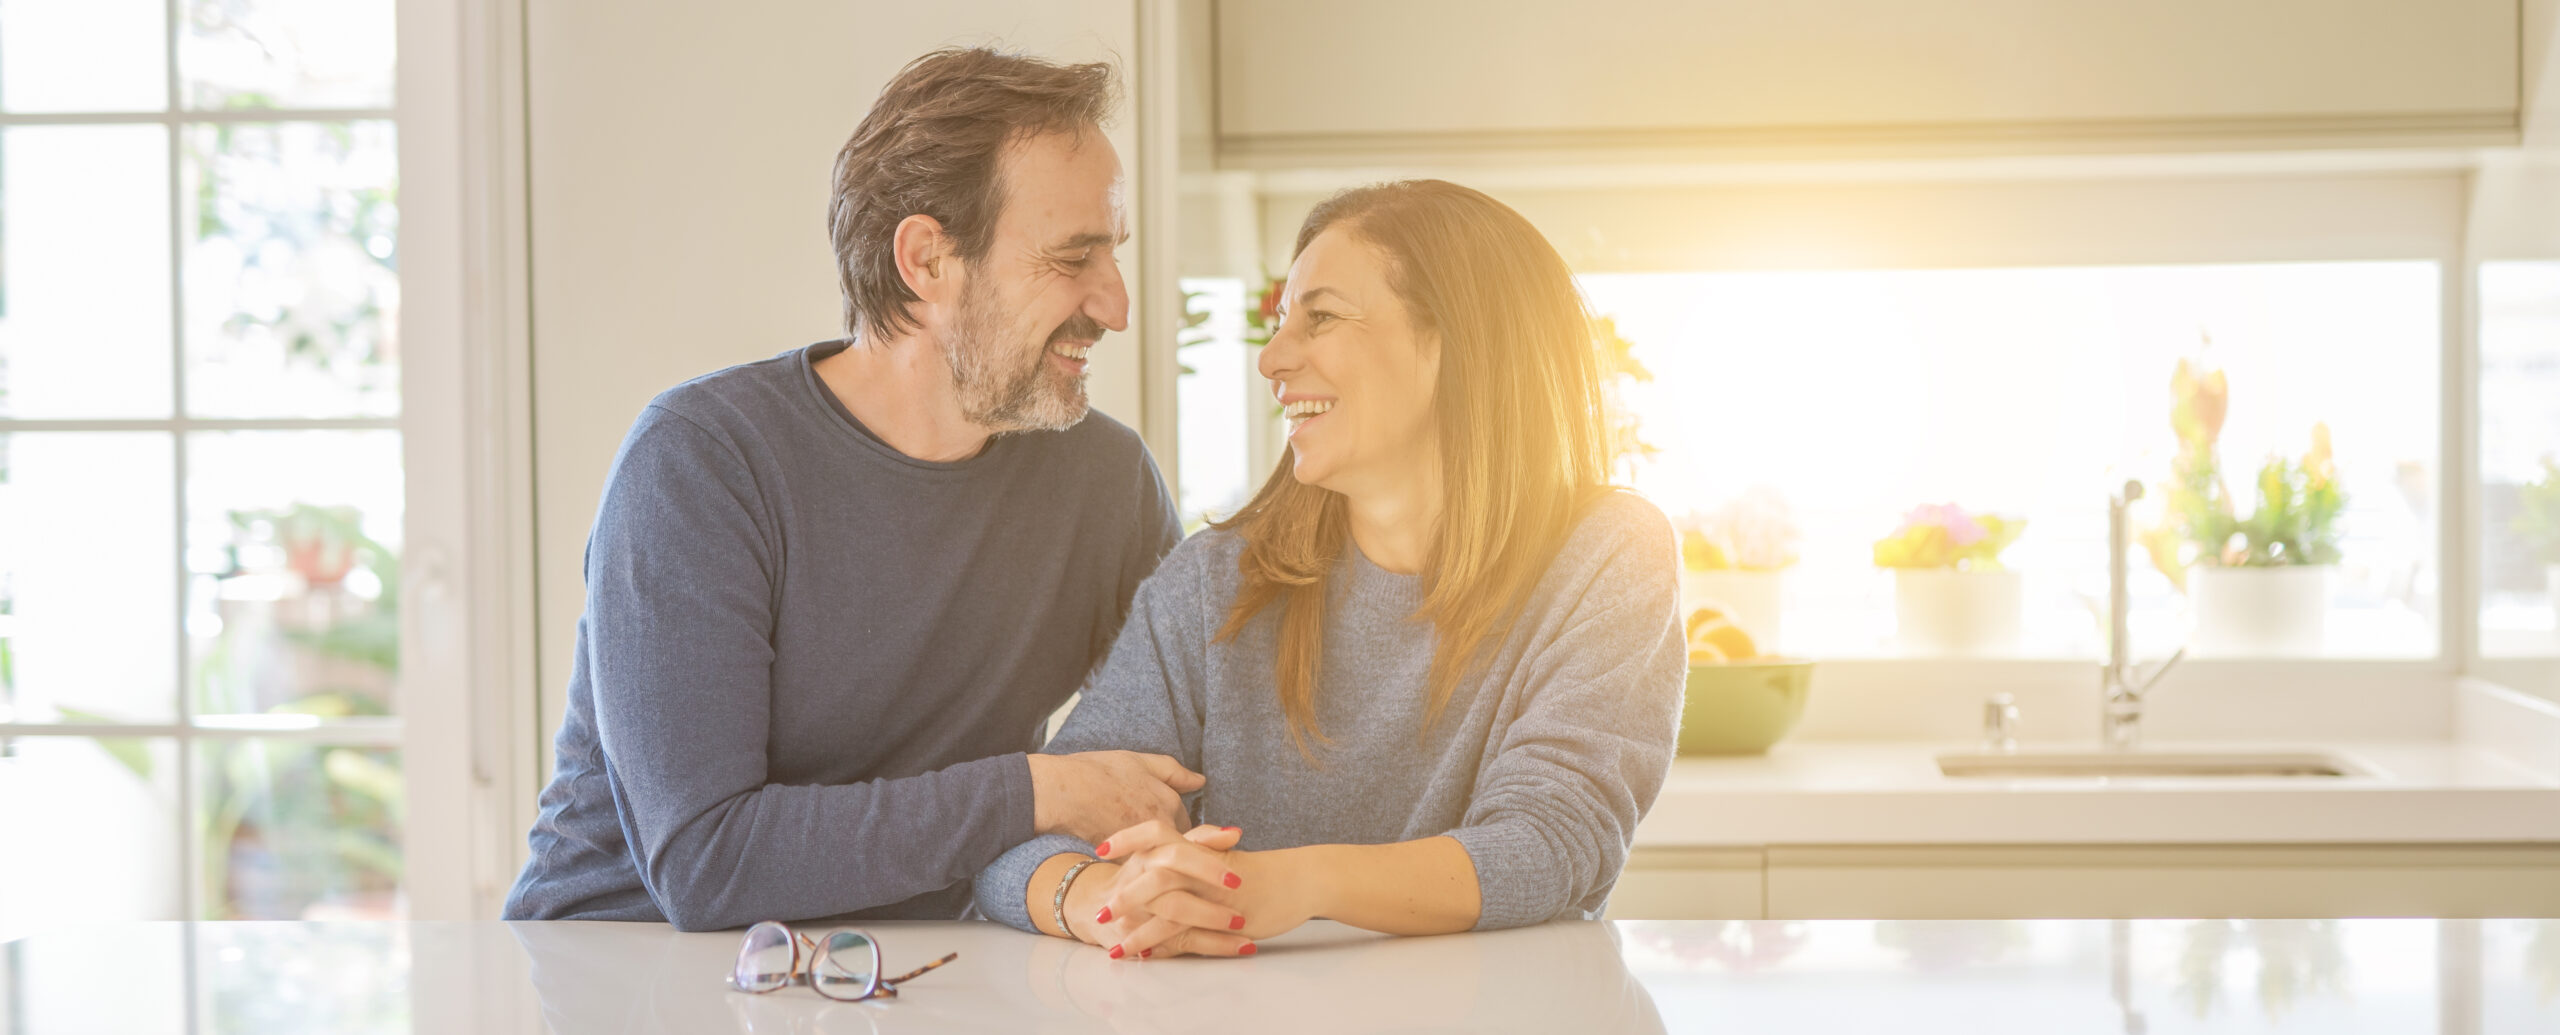 Middle age couple sitting together at home laughing and staring at each other in their kitchen.